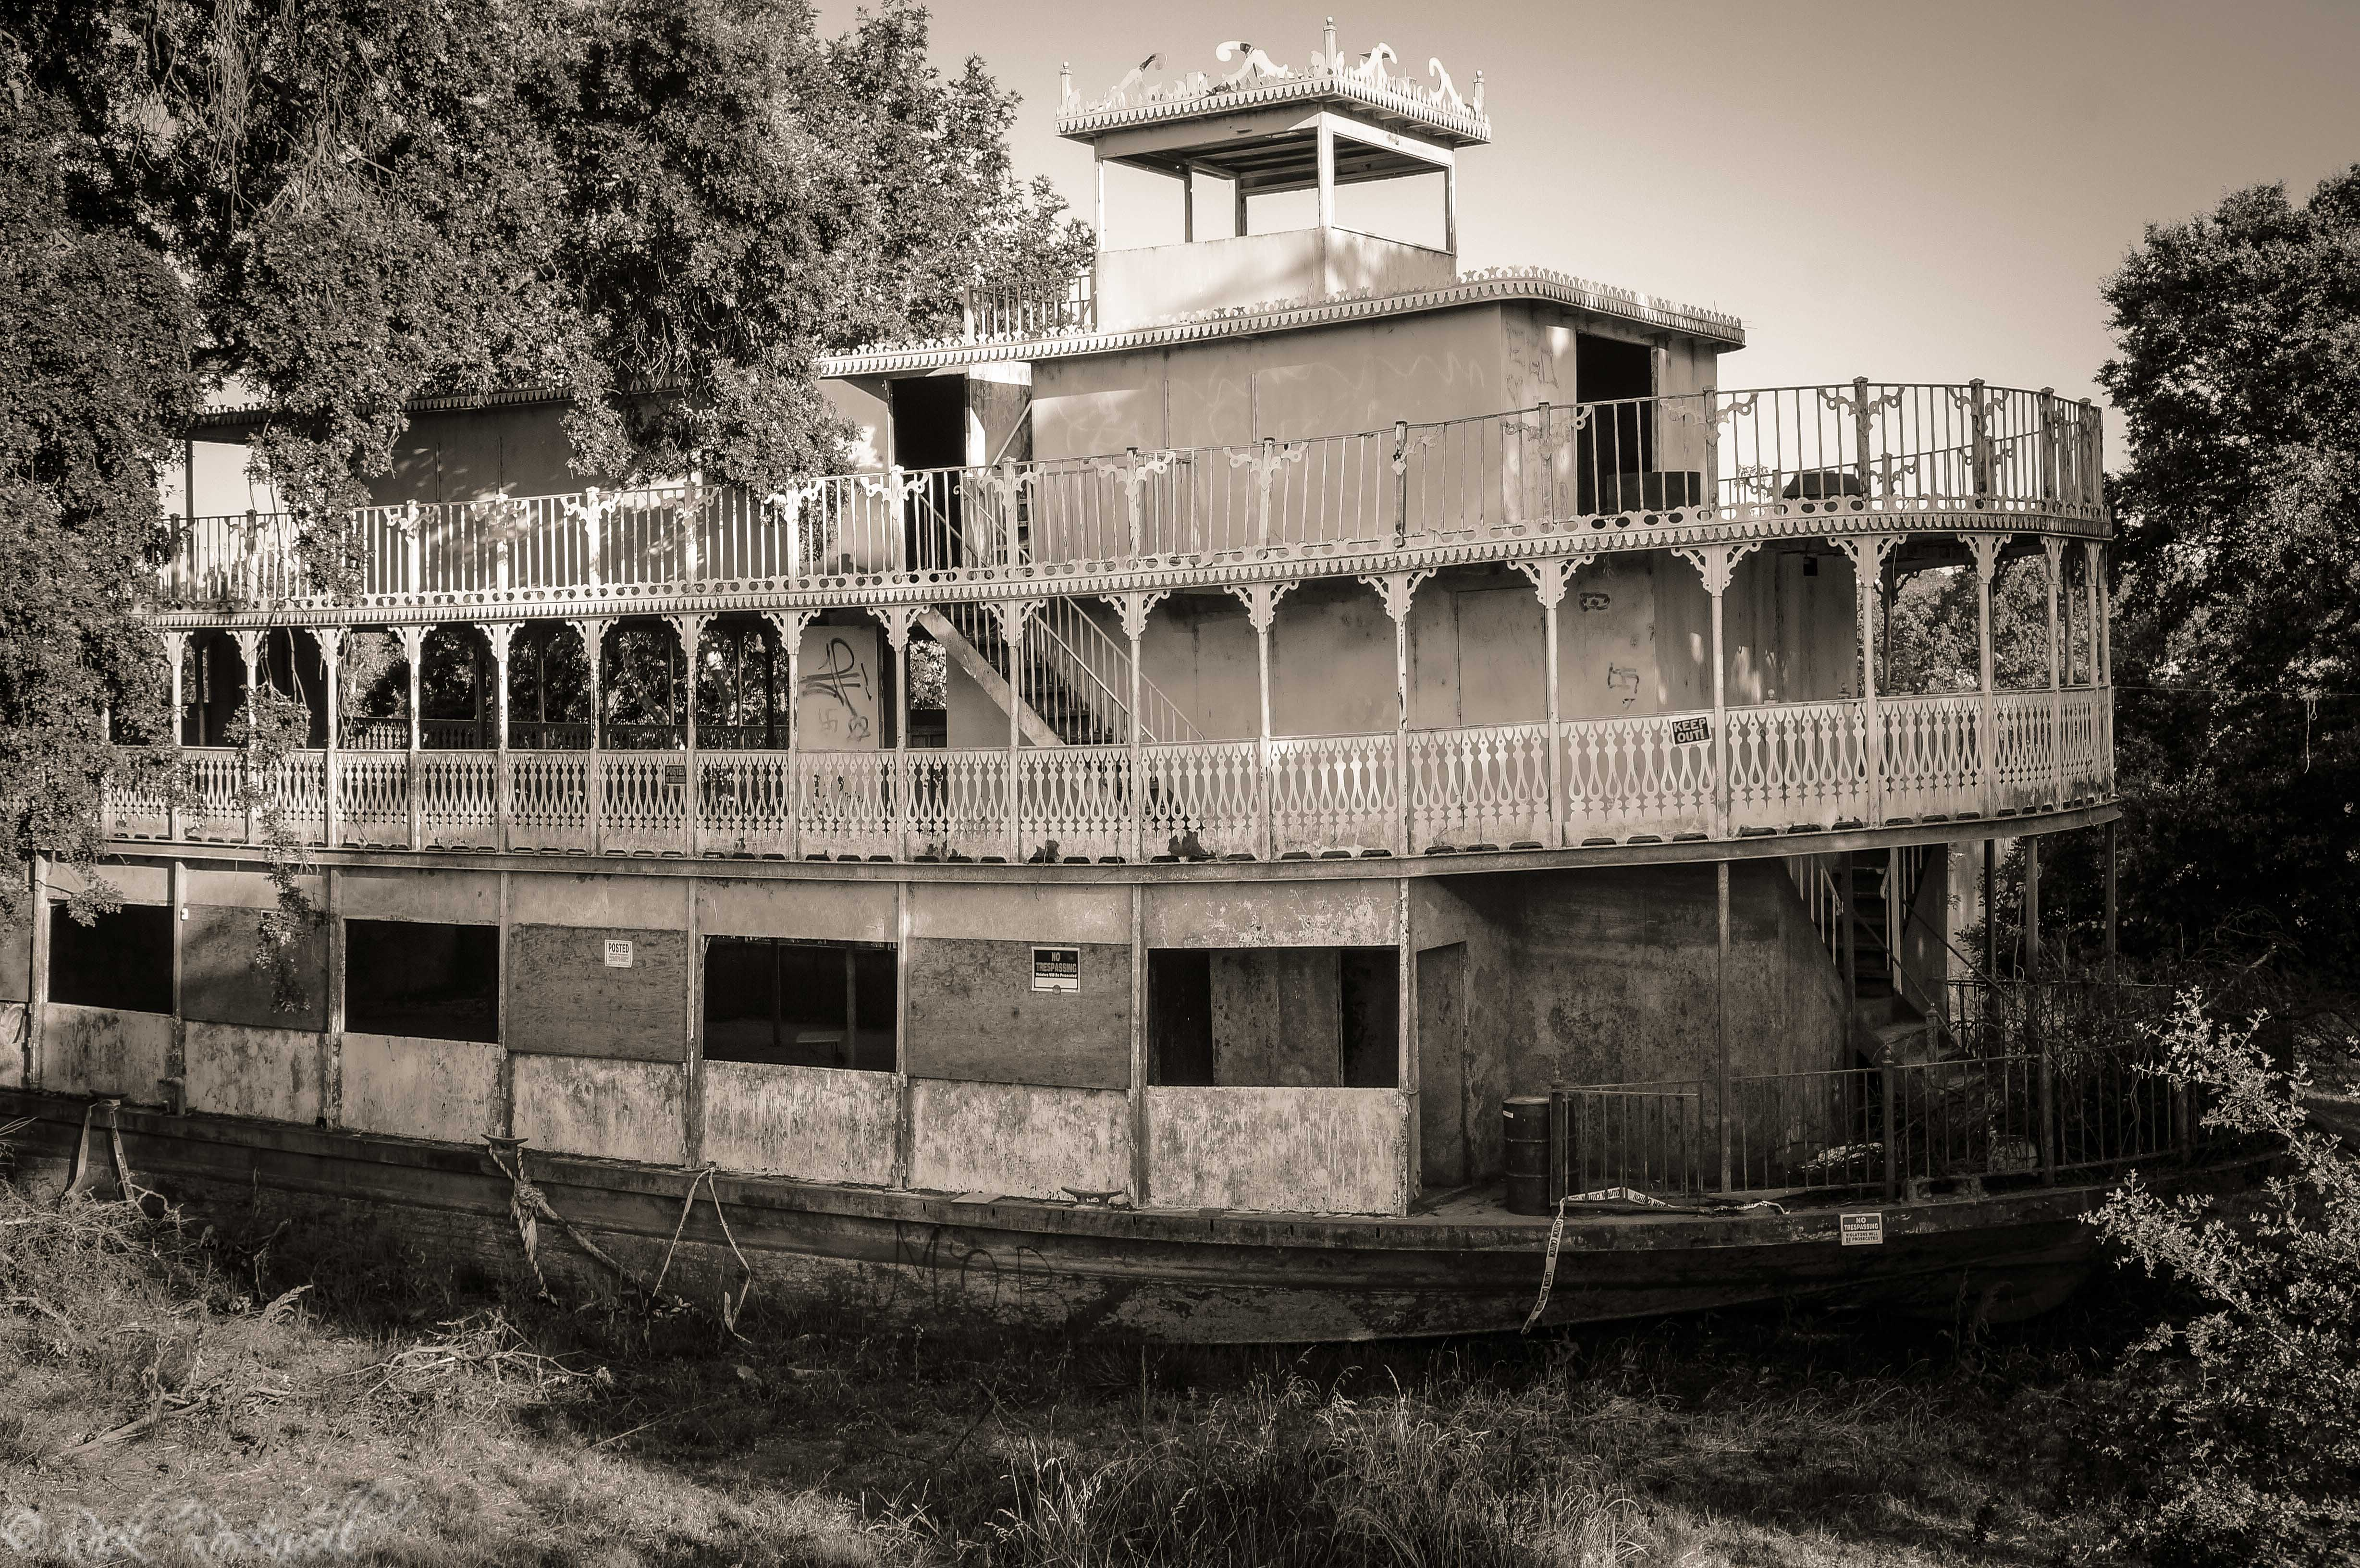 The Spirit Of Sacramento Abandoned Riverboat On The